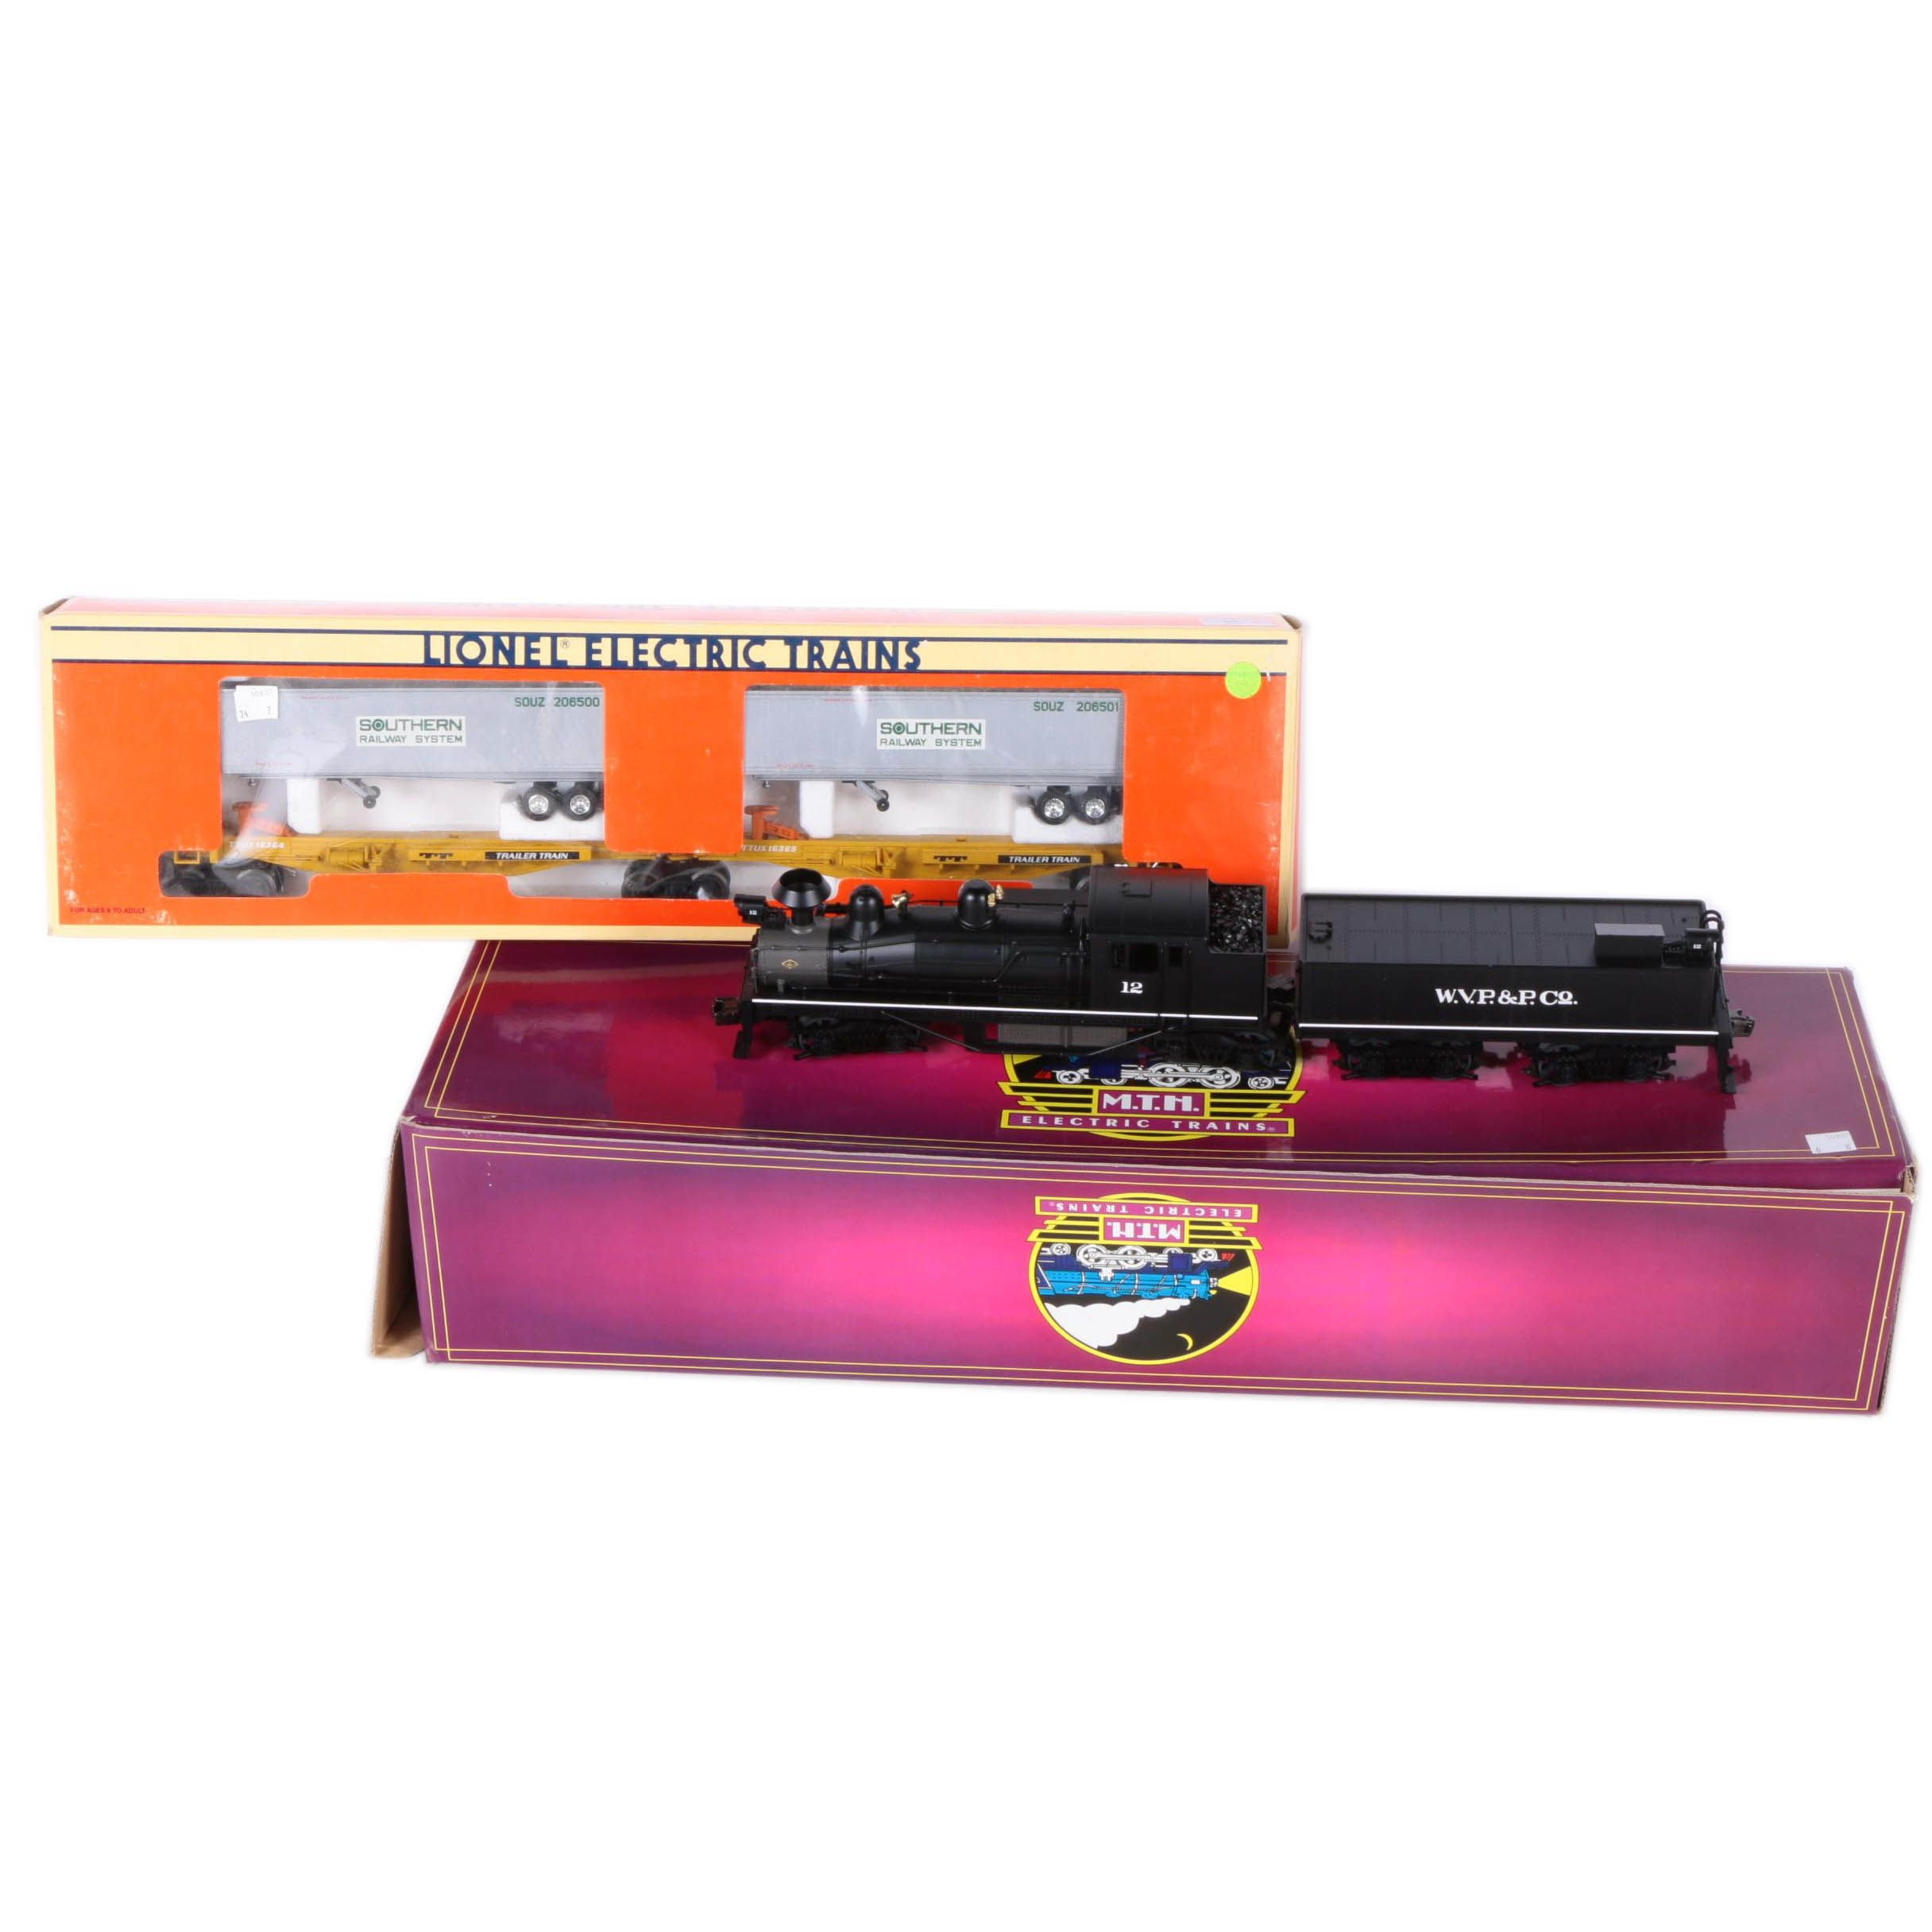 M.T.H. Electric O Scale 2 Rail Steam Engine and Lionel Southern T.T.U.X. Cars